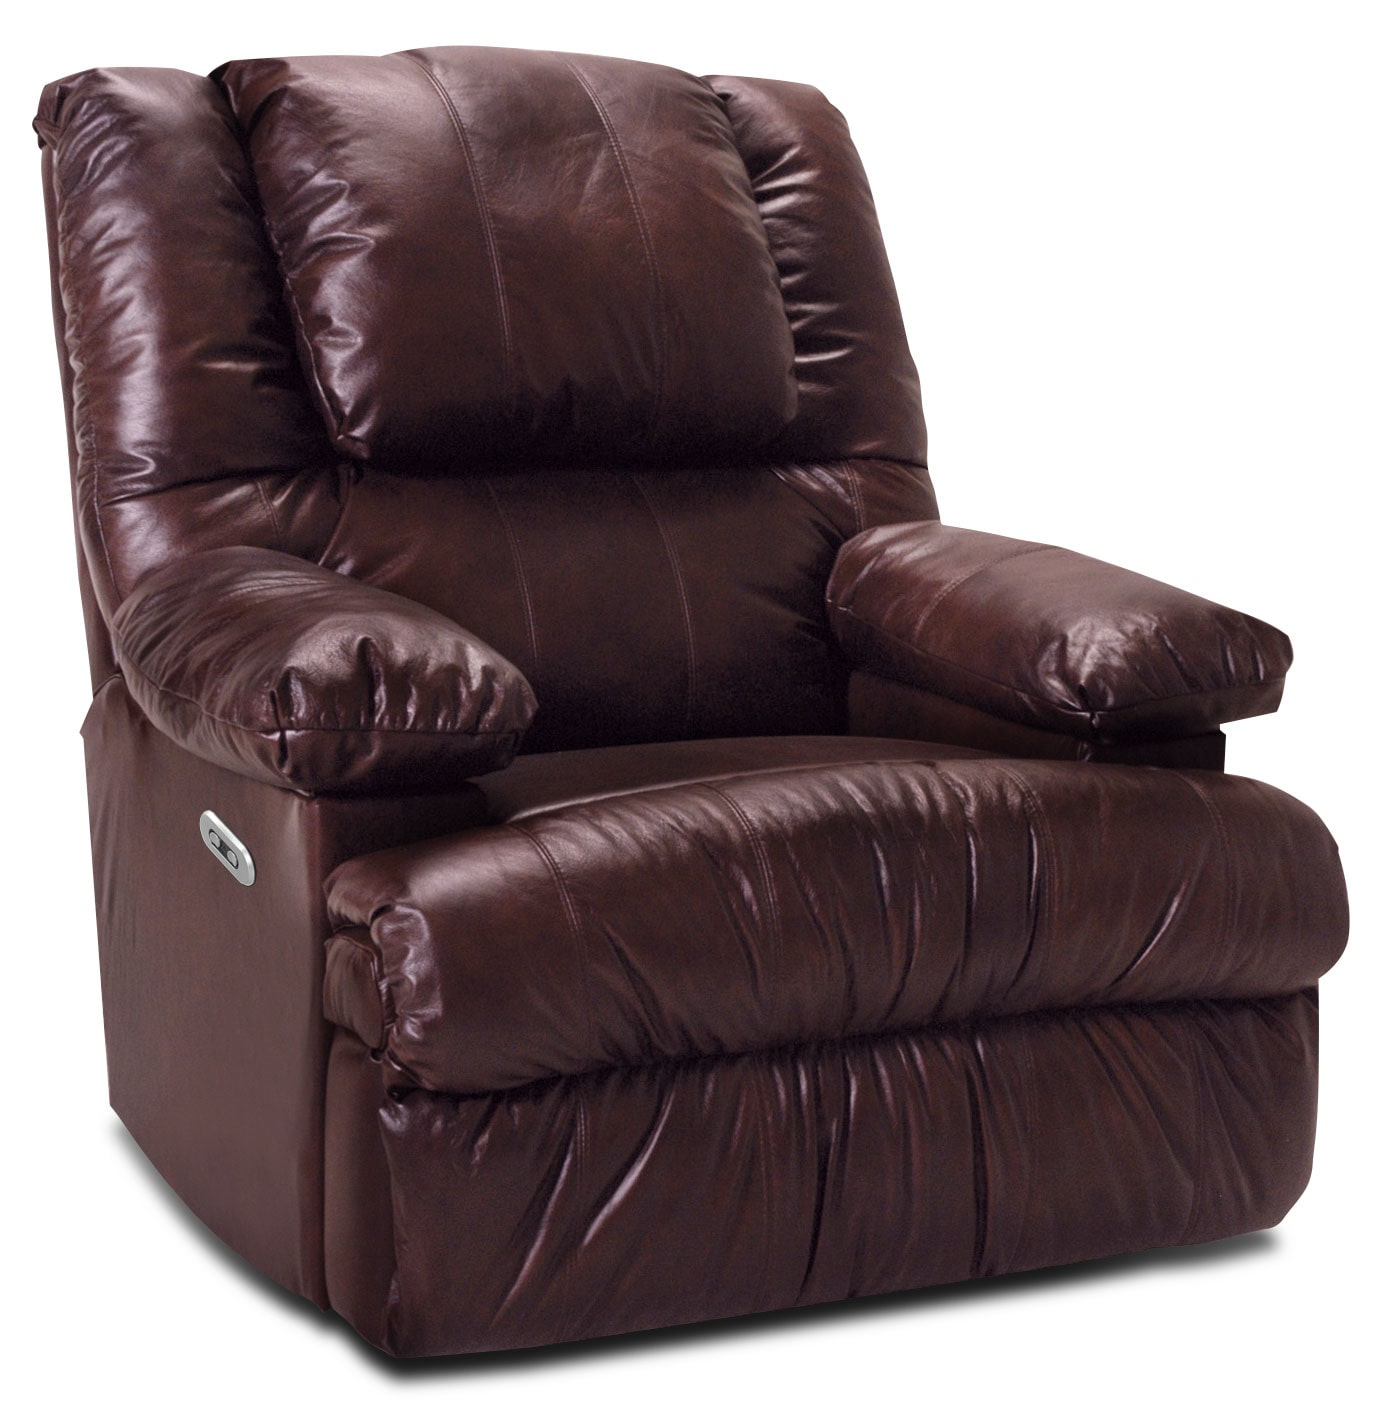 Designed2B 5598 Genuine Leather Power Recliner with Massage and Storage Arms - Burgundy